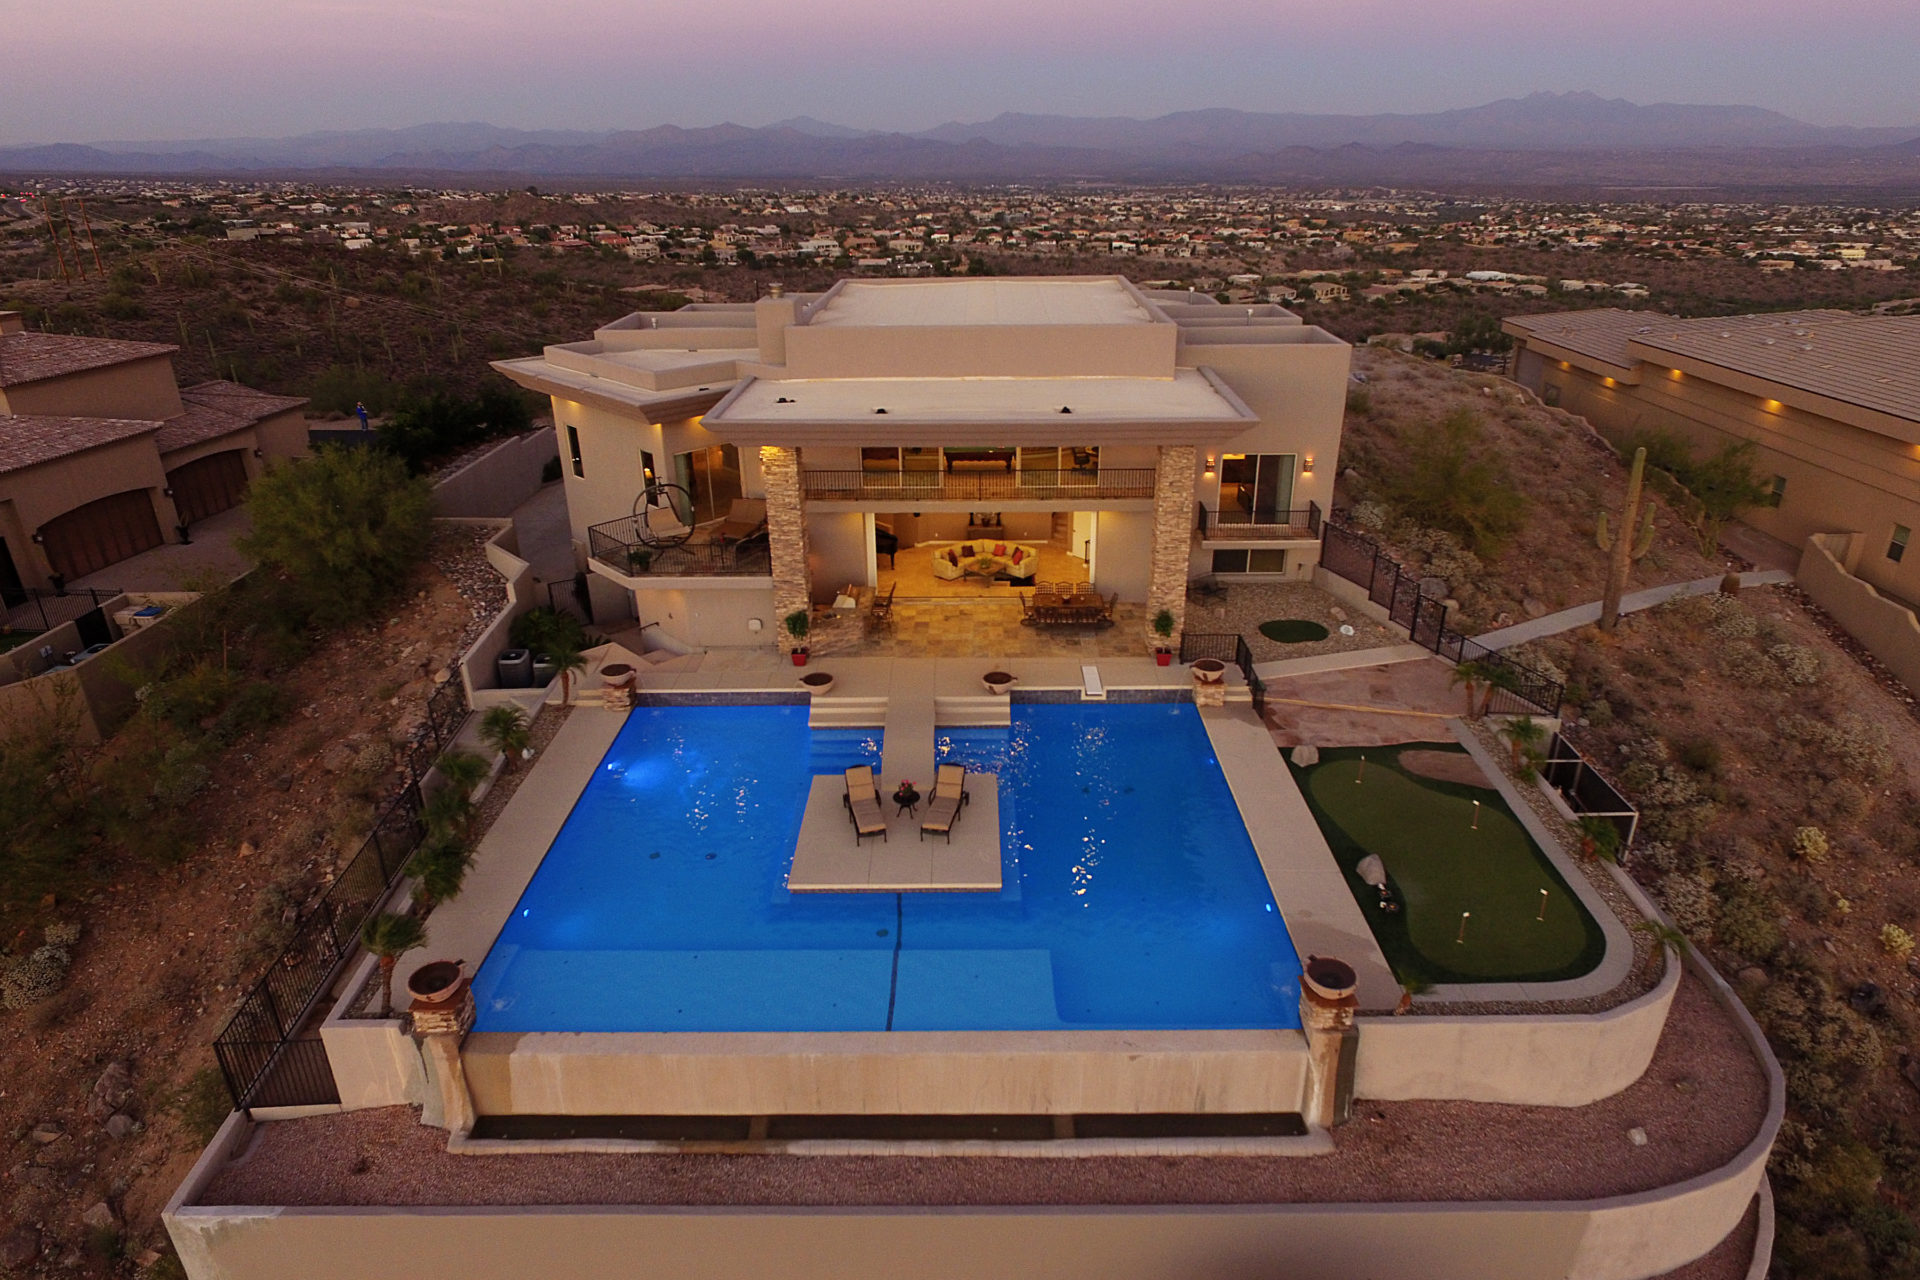 4 Fountain Hills Homes For Sale With Breathtaking Views